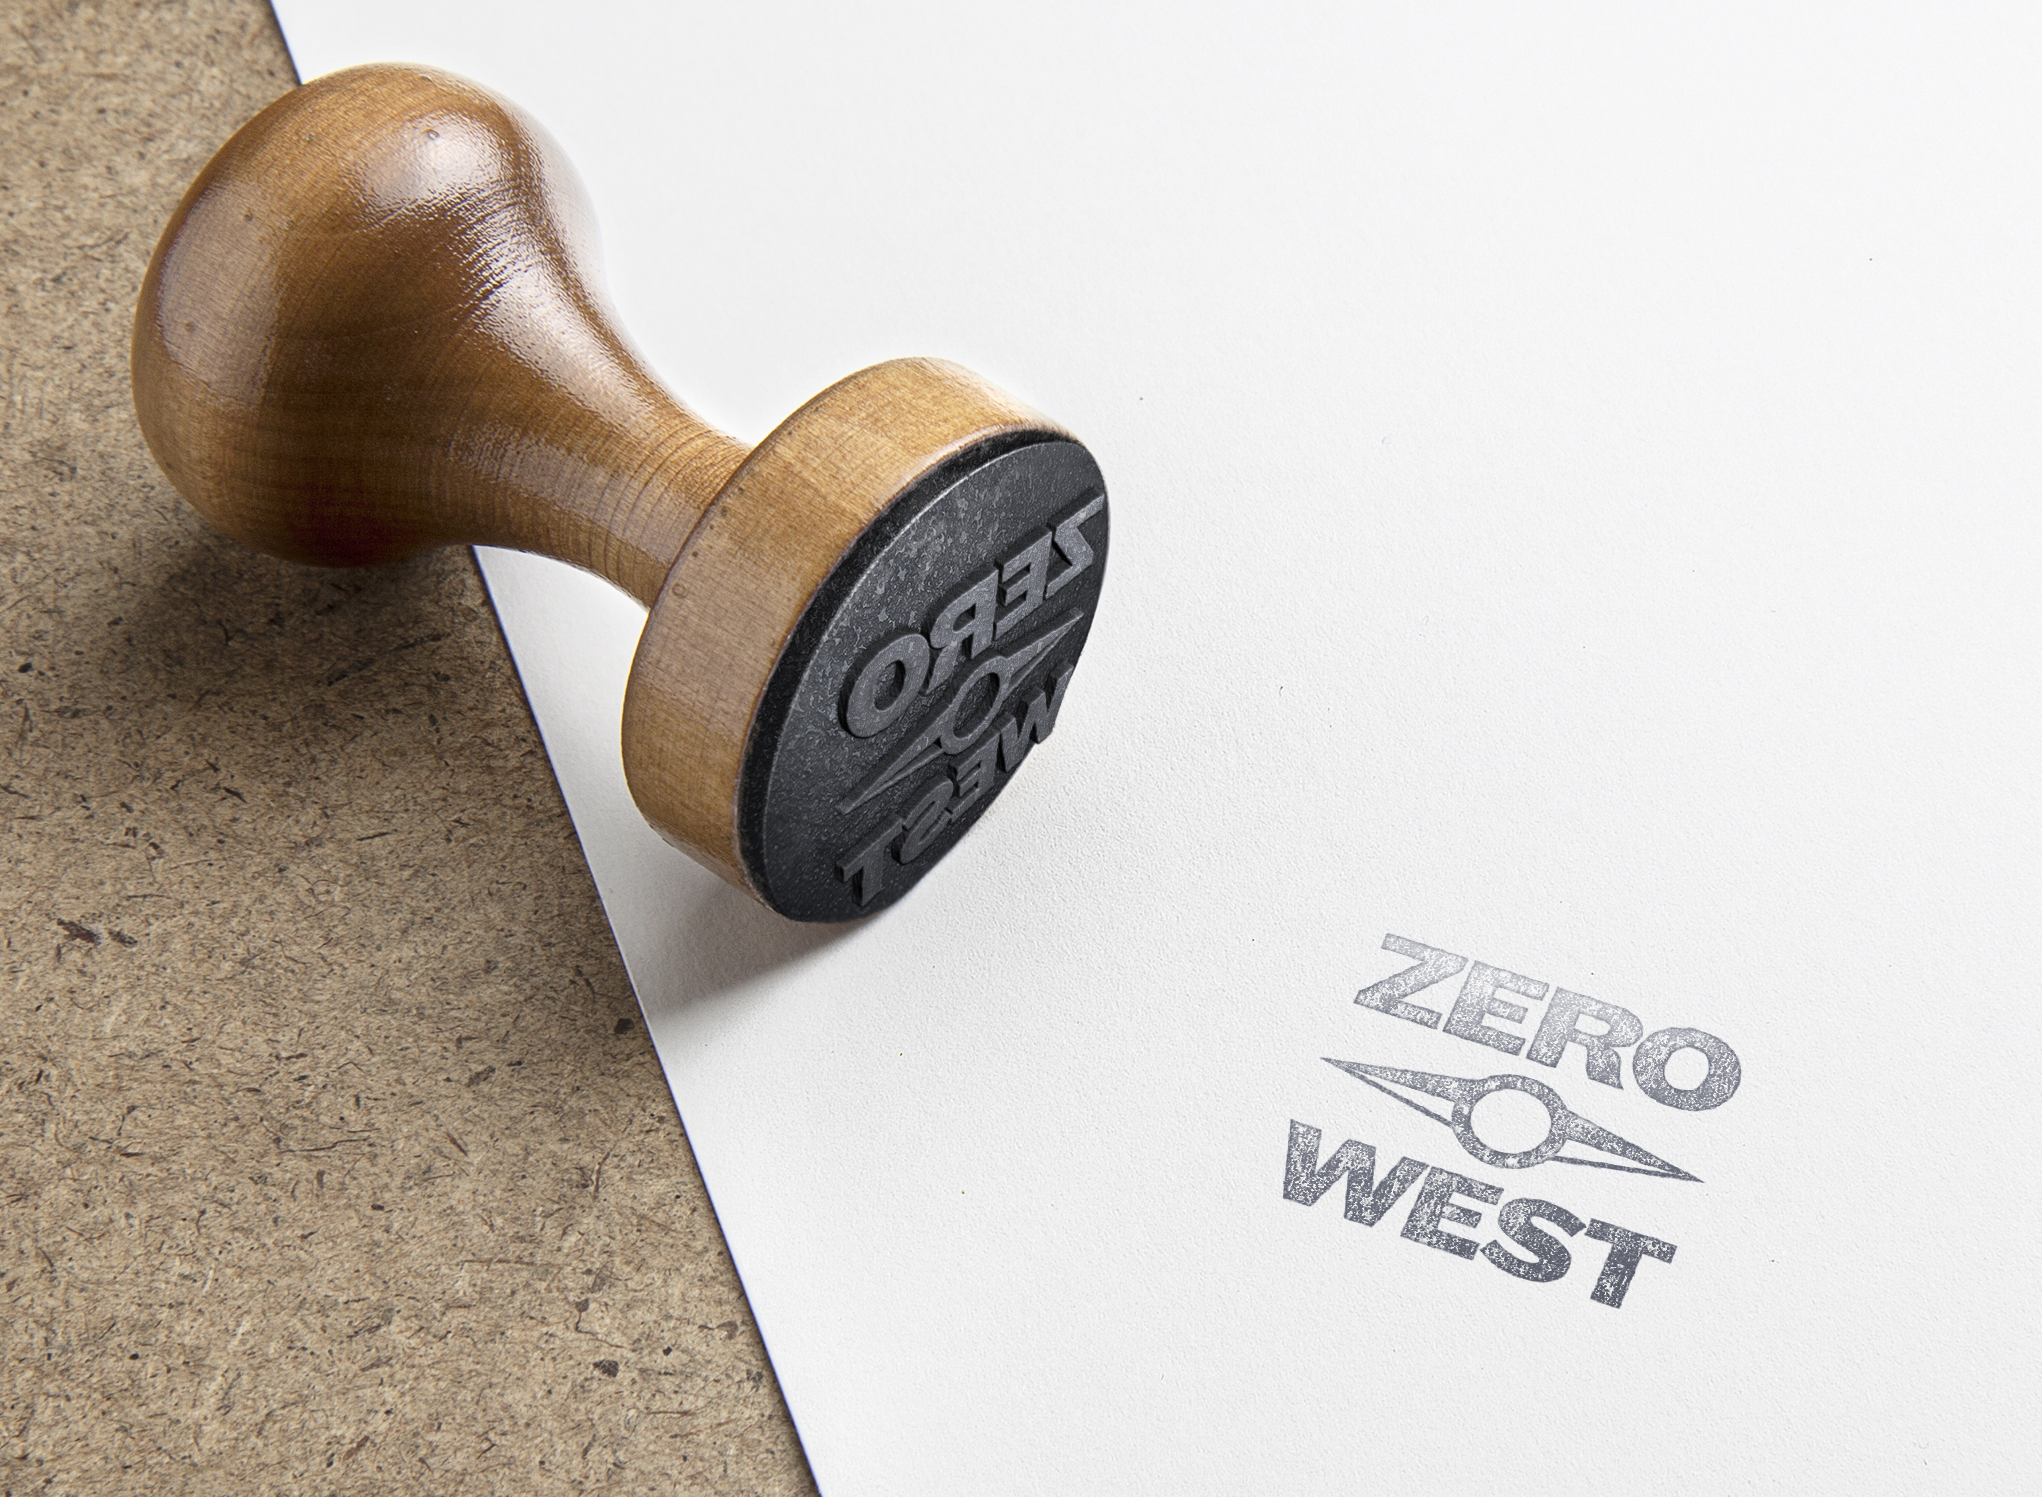 ZeroWest_Stamp.jpg